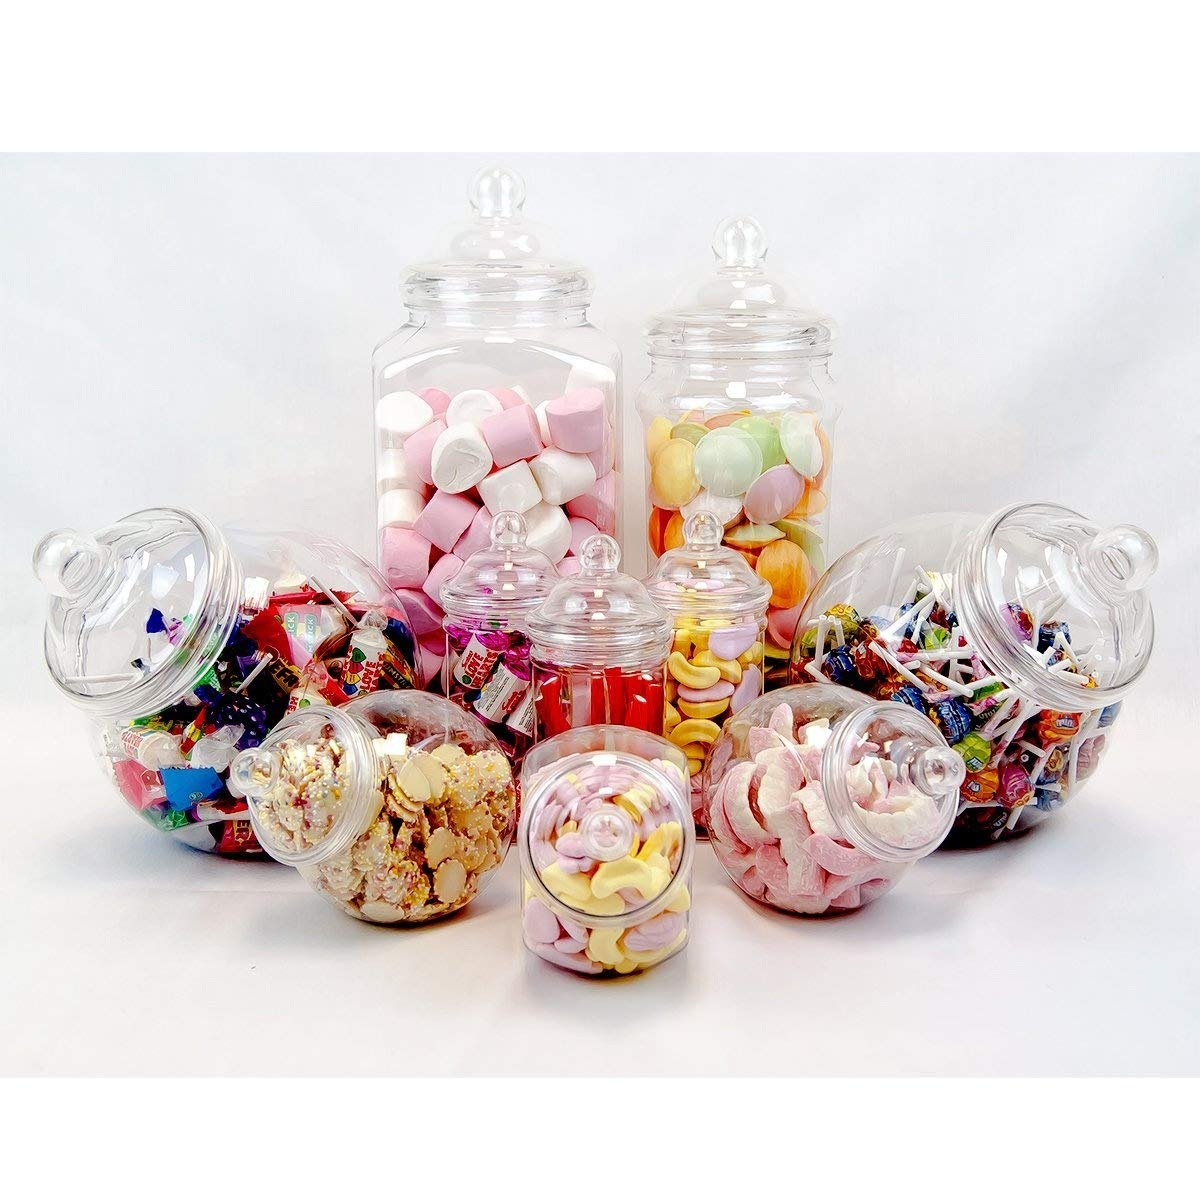 10 Jar Vintage Victorian Pick & Mix Sweet Shop Candy Buffet Kit Party Pack product image